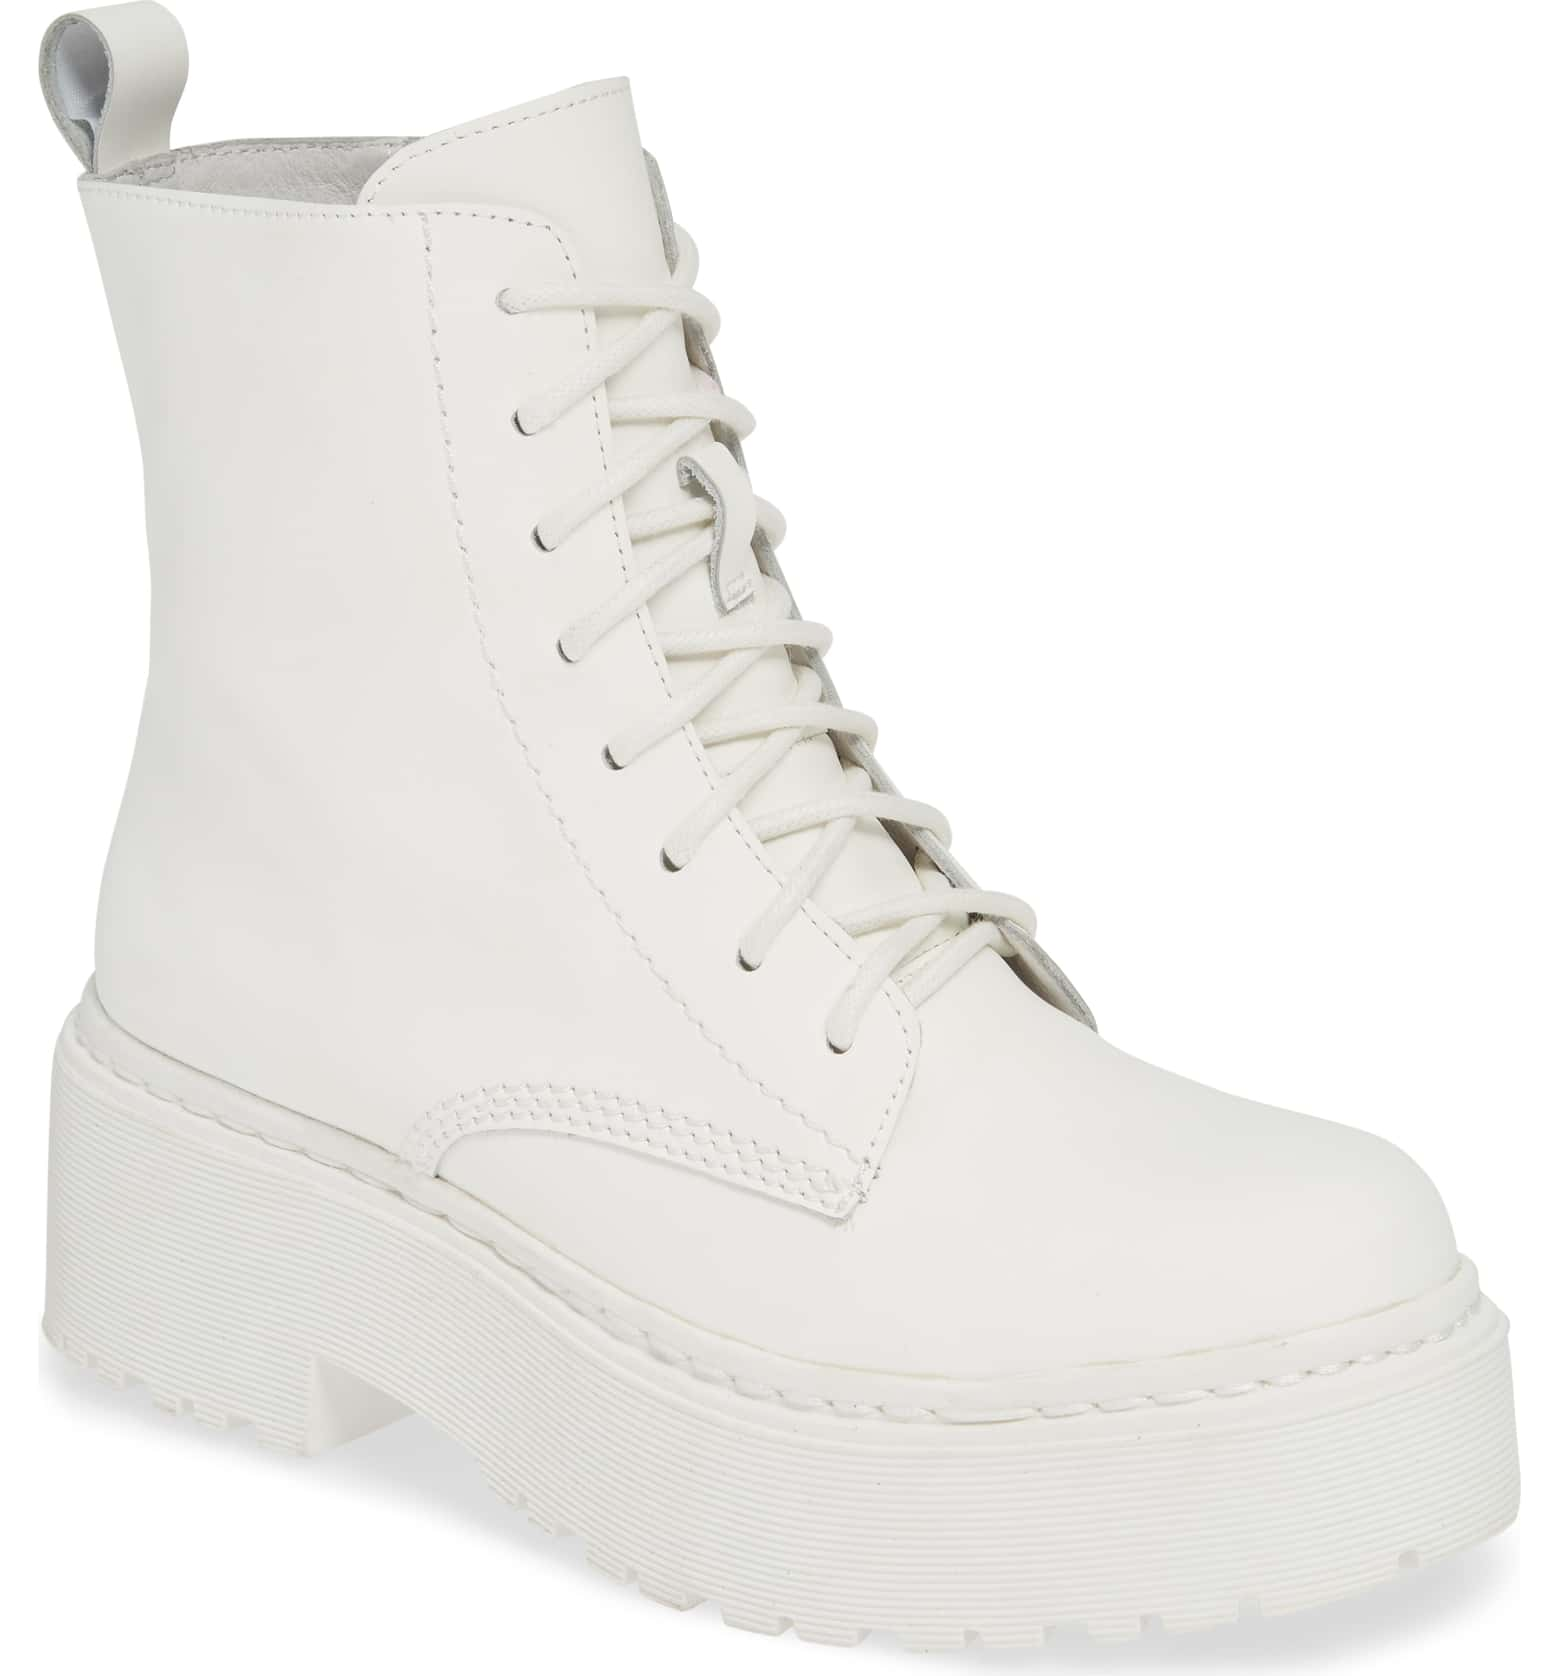 https://shop.nordstrom.com/s/jeffrey-campbell-district-combat-boot-women/5129098?origin=keywordsearch-personalizedsort&breadcrumb=Home%2FAll%20Results&color=white%2F%20white%20leather